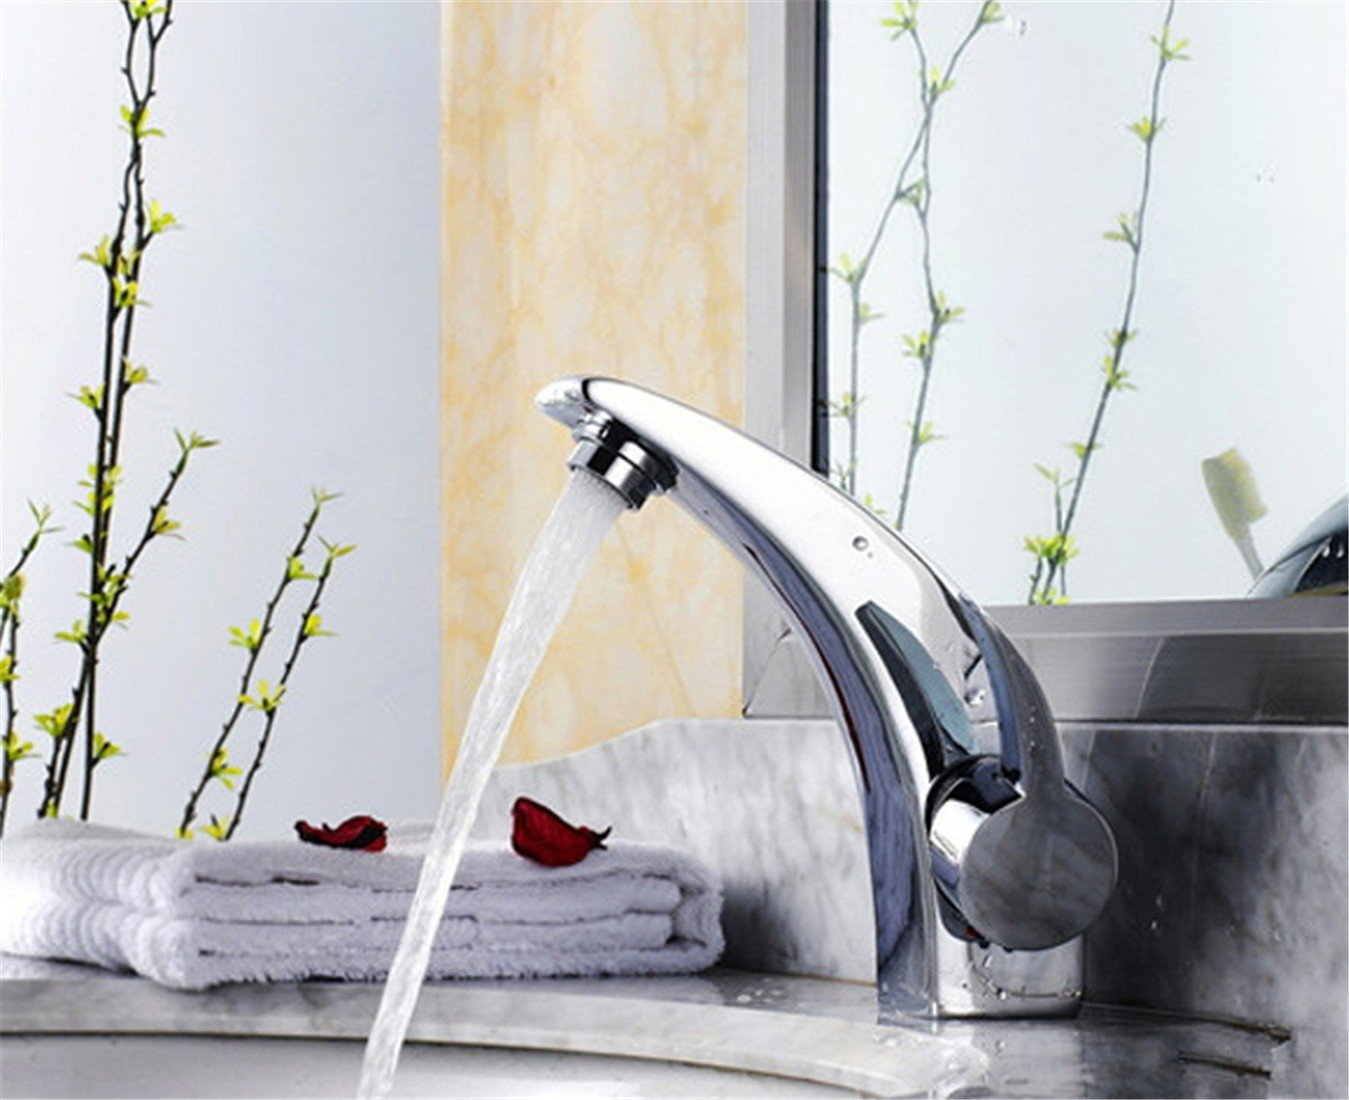 I 17.5cm LHbox Basin Mixer Tap Bathroom Sink Faucet Brass body hot and cold basin tap continental pull-down faucet stylish lowered basin faucet, pure silver magic lamp with 60 Tube